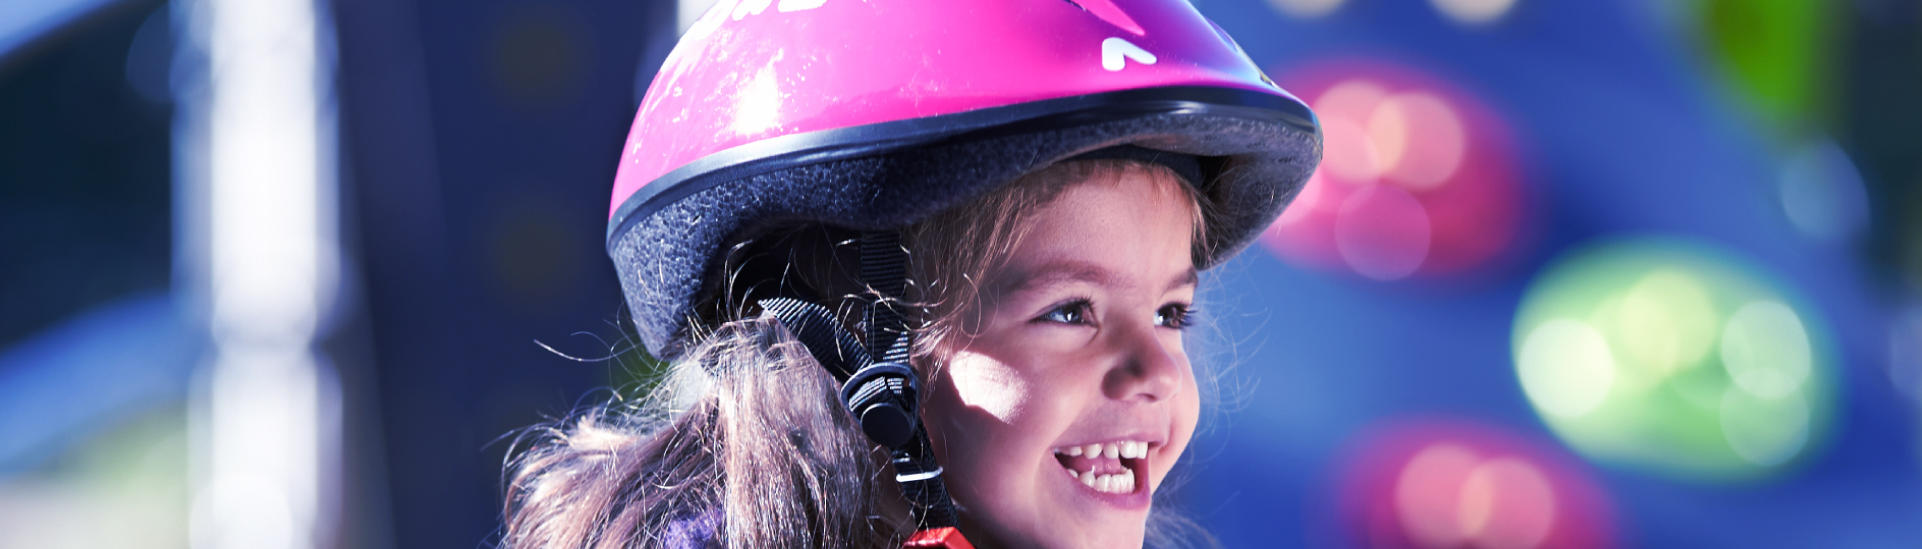 Why are Bike Helmets a Safety Essential